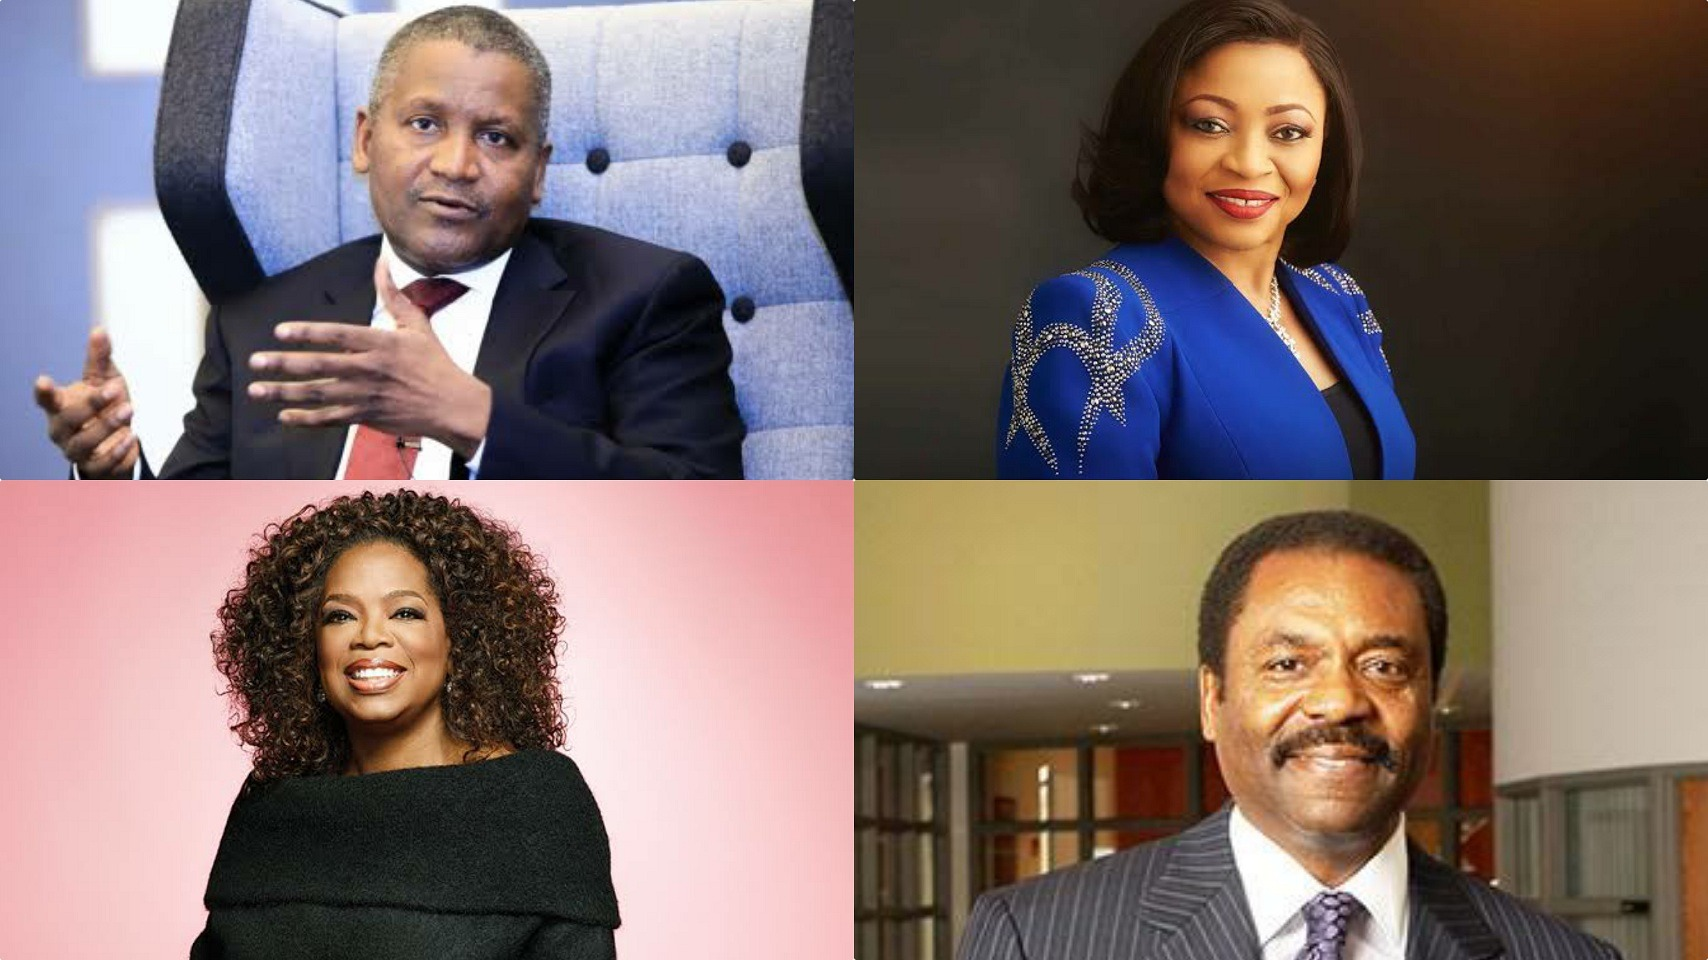 Meet The Wealthy Black Entrepreneurs Whose Stories Would Inspire You